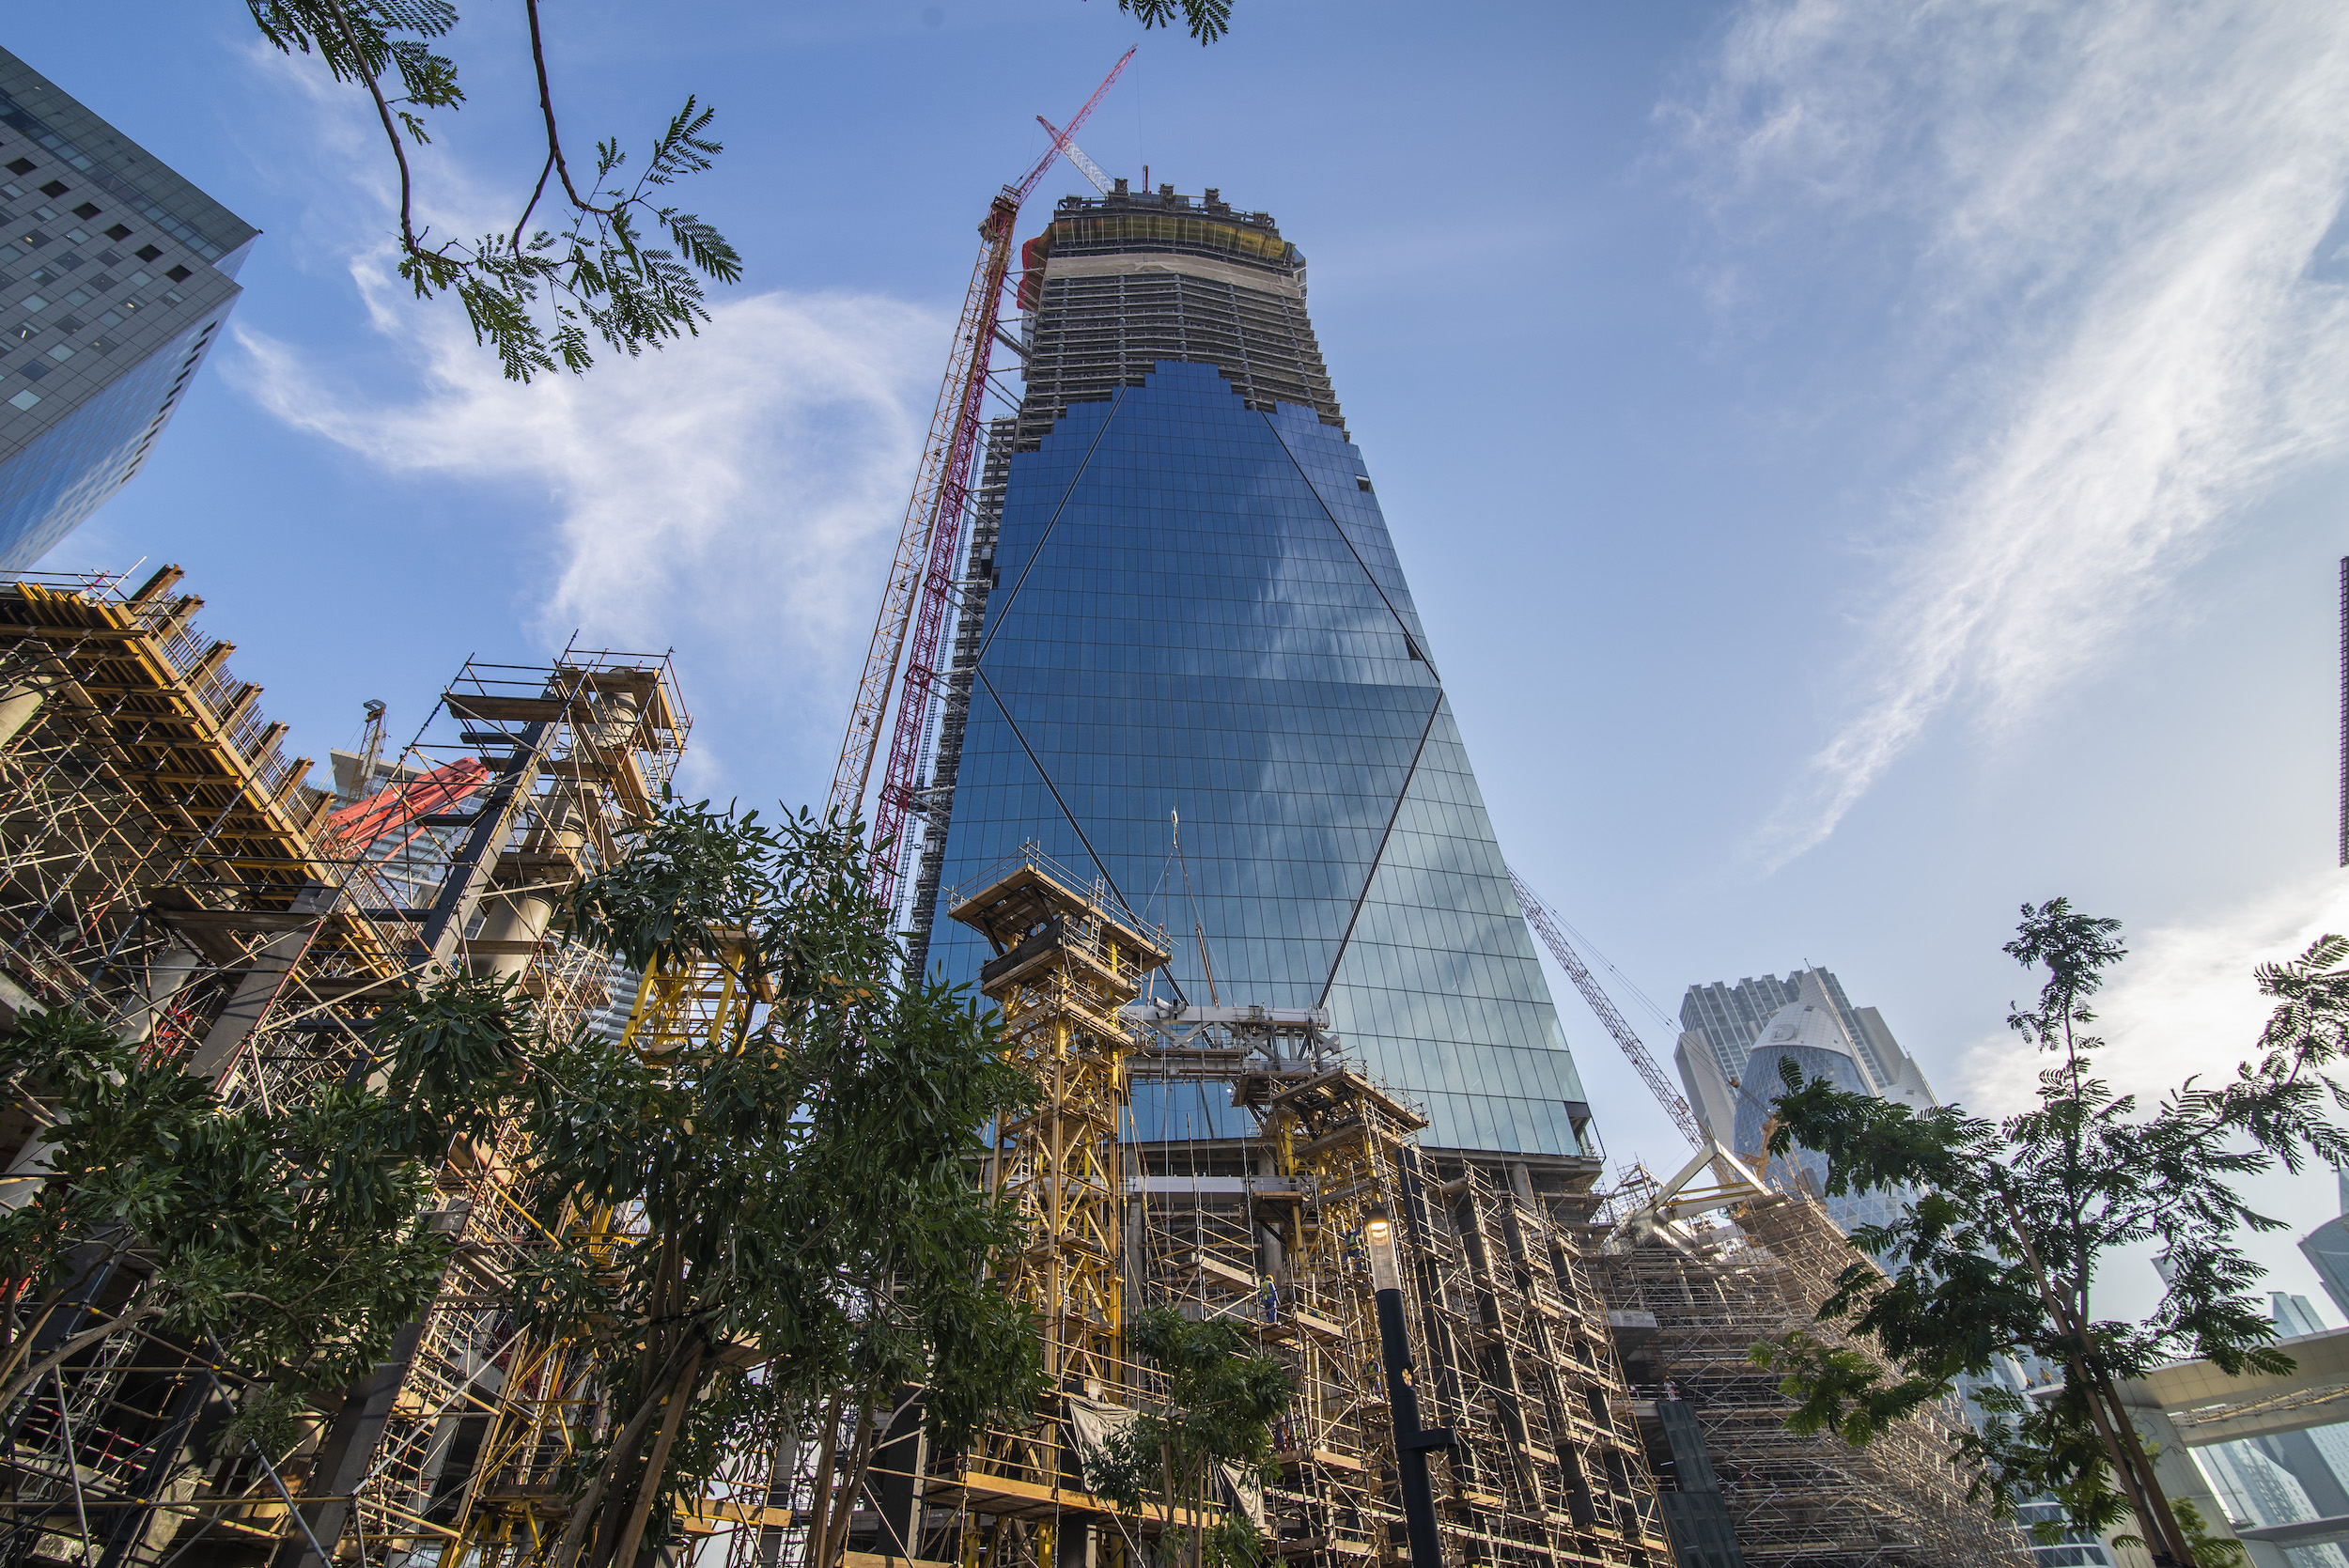 Bsbg And Multiplex Win H U0026s Awards For Icd Brookfield Place